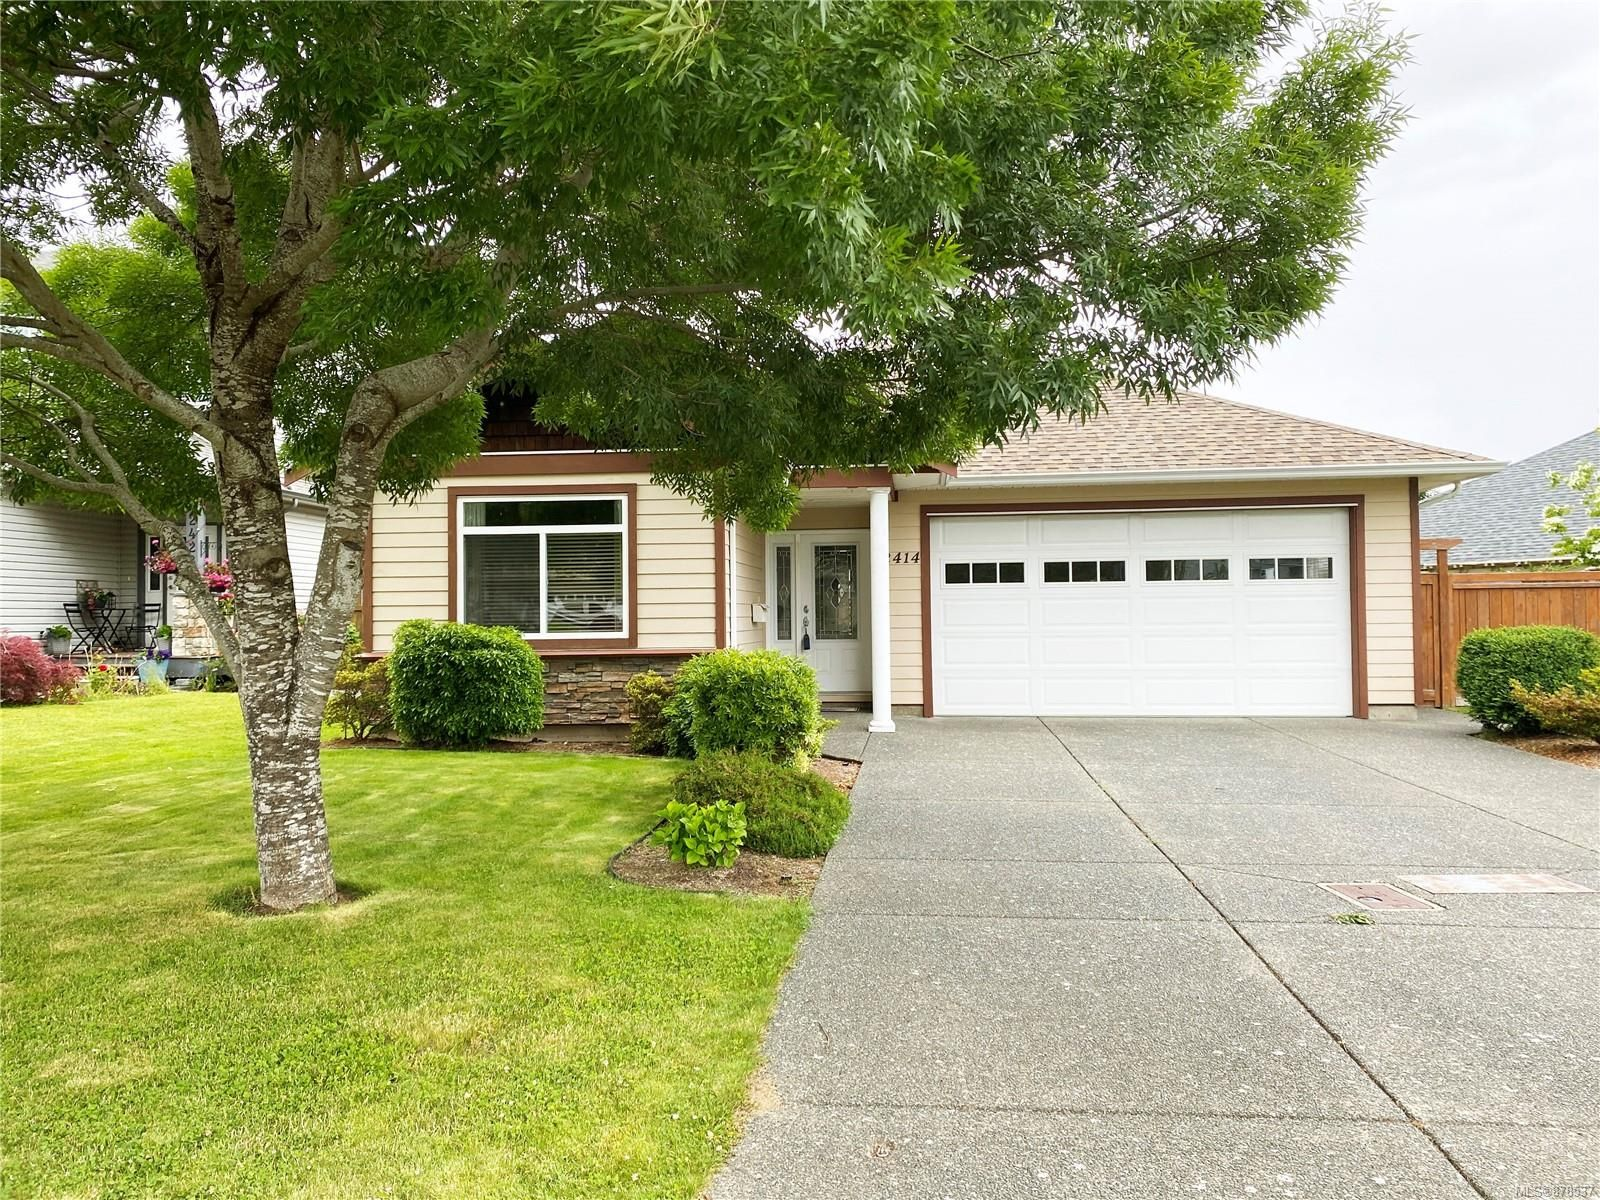 Main Photo: 2414 Tiger Moth Pl in : CV Comox (Town of) House for sale (Comox Valley)  : MLS®# 878537